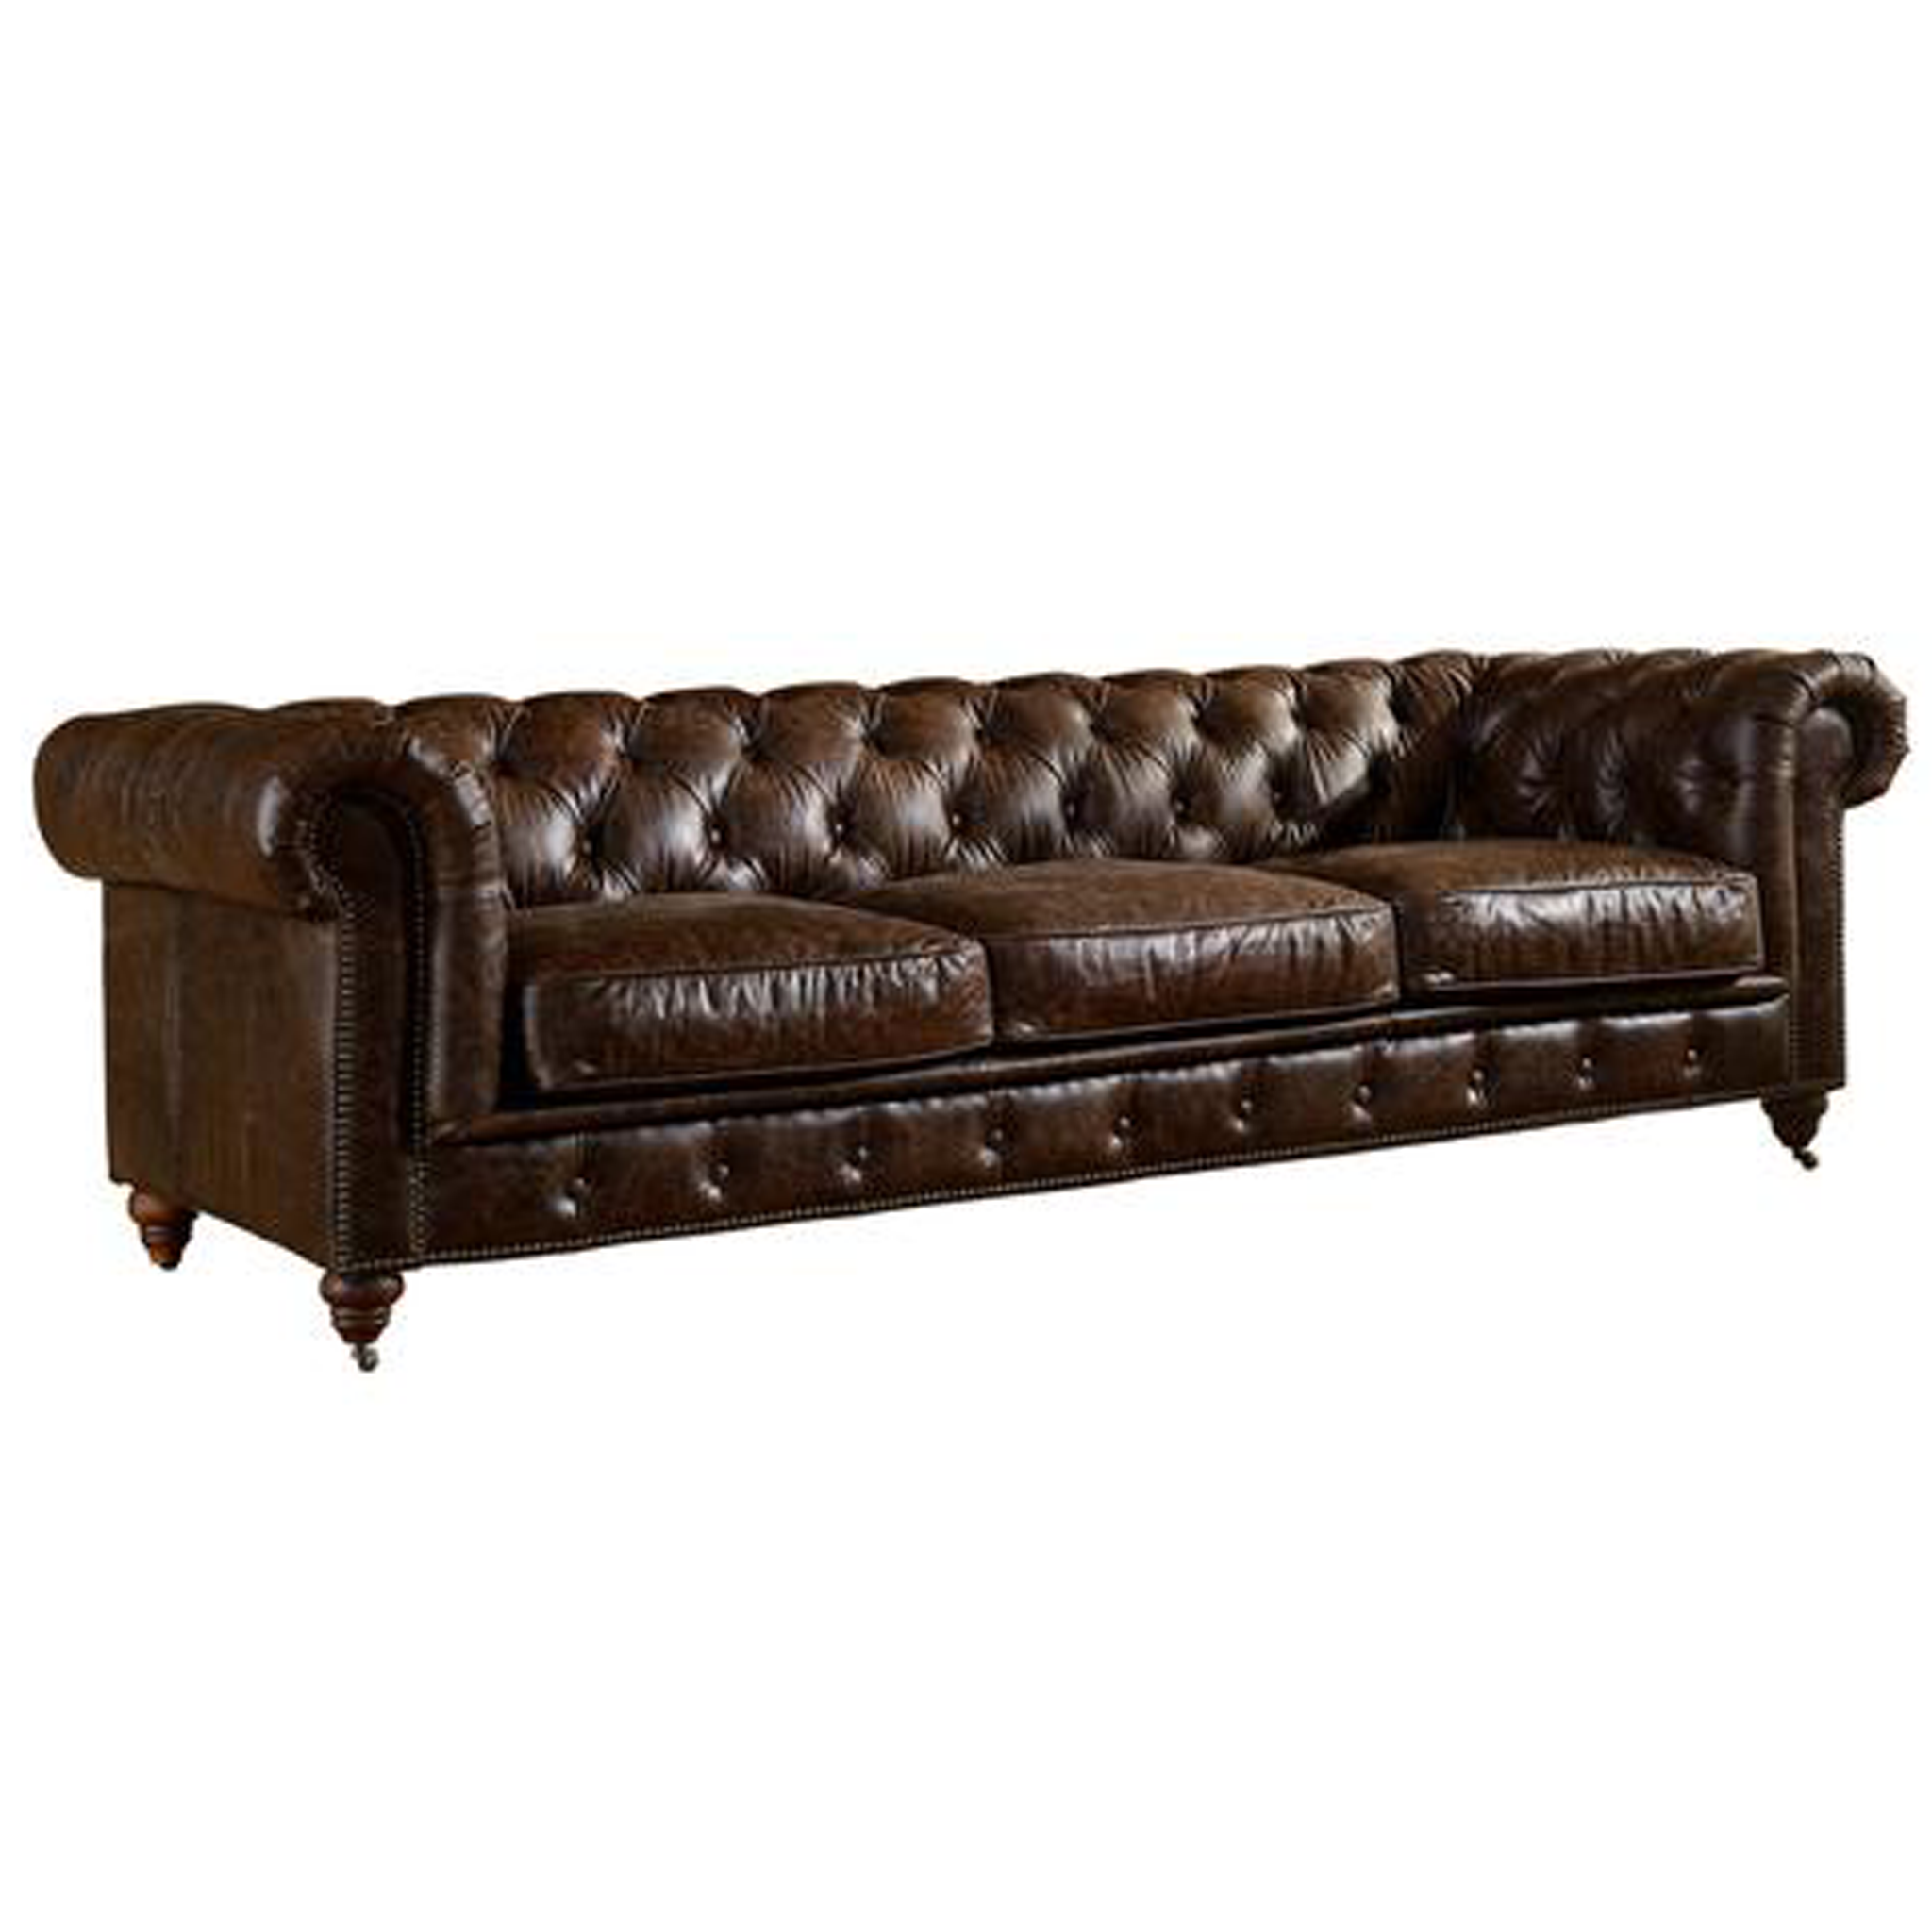 Preorder Century Chesterfield Sofa Dark Brown Leather In 2020 Brown Leather Chesterfield Brown Leather Chesterfield Sofa Leather Chesterfield Sofa